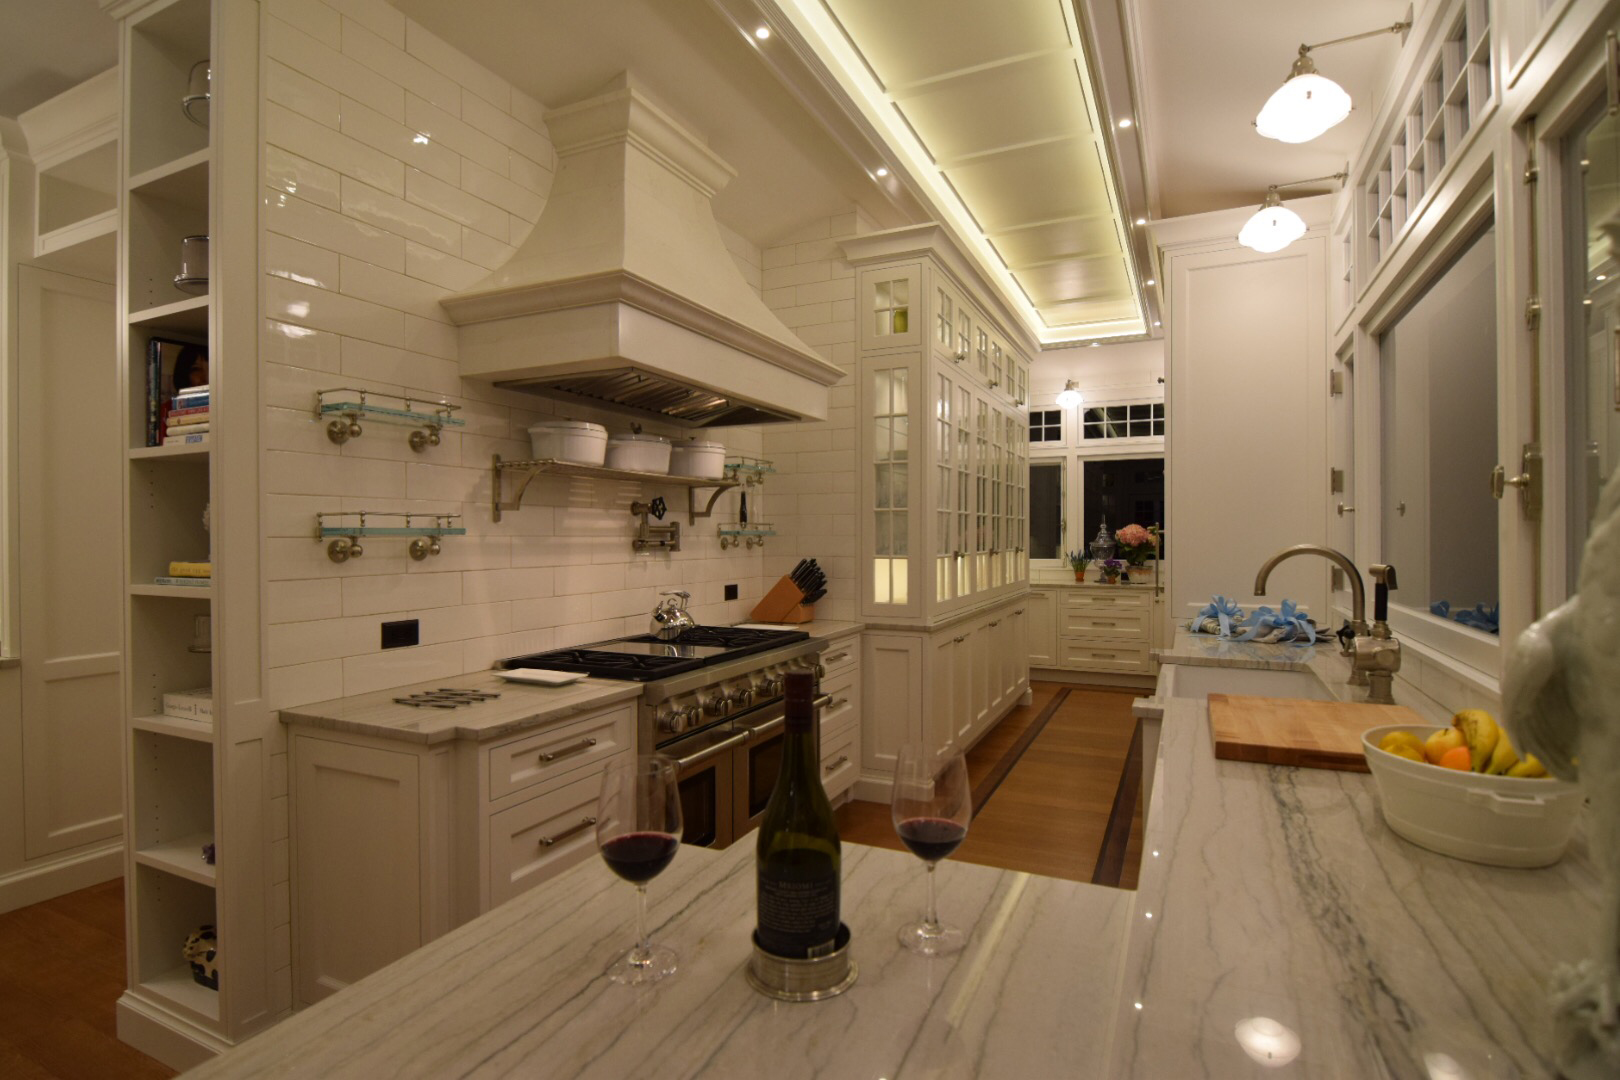 custom-traditional-kitchen-face-frame-with-inset-cabinet-doors-in-solid-and-true-divider-lights-styles.jpg